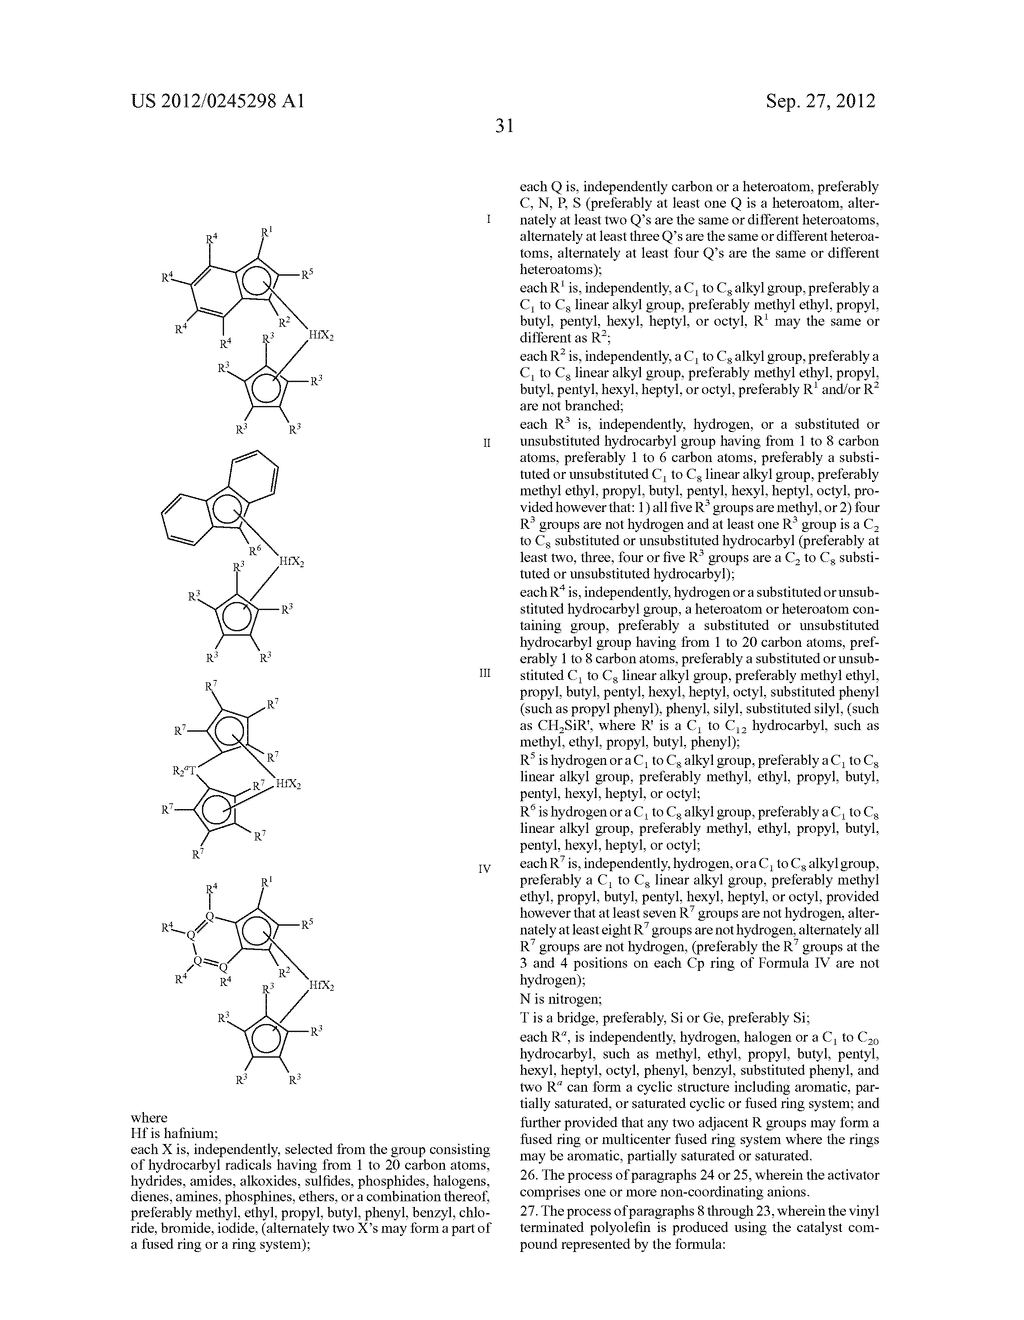 Amphiphilic Block Polymers Prepared by Alkene Metathesis - diagram, schematic, and image 32